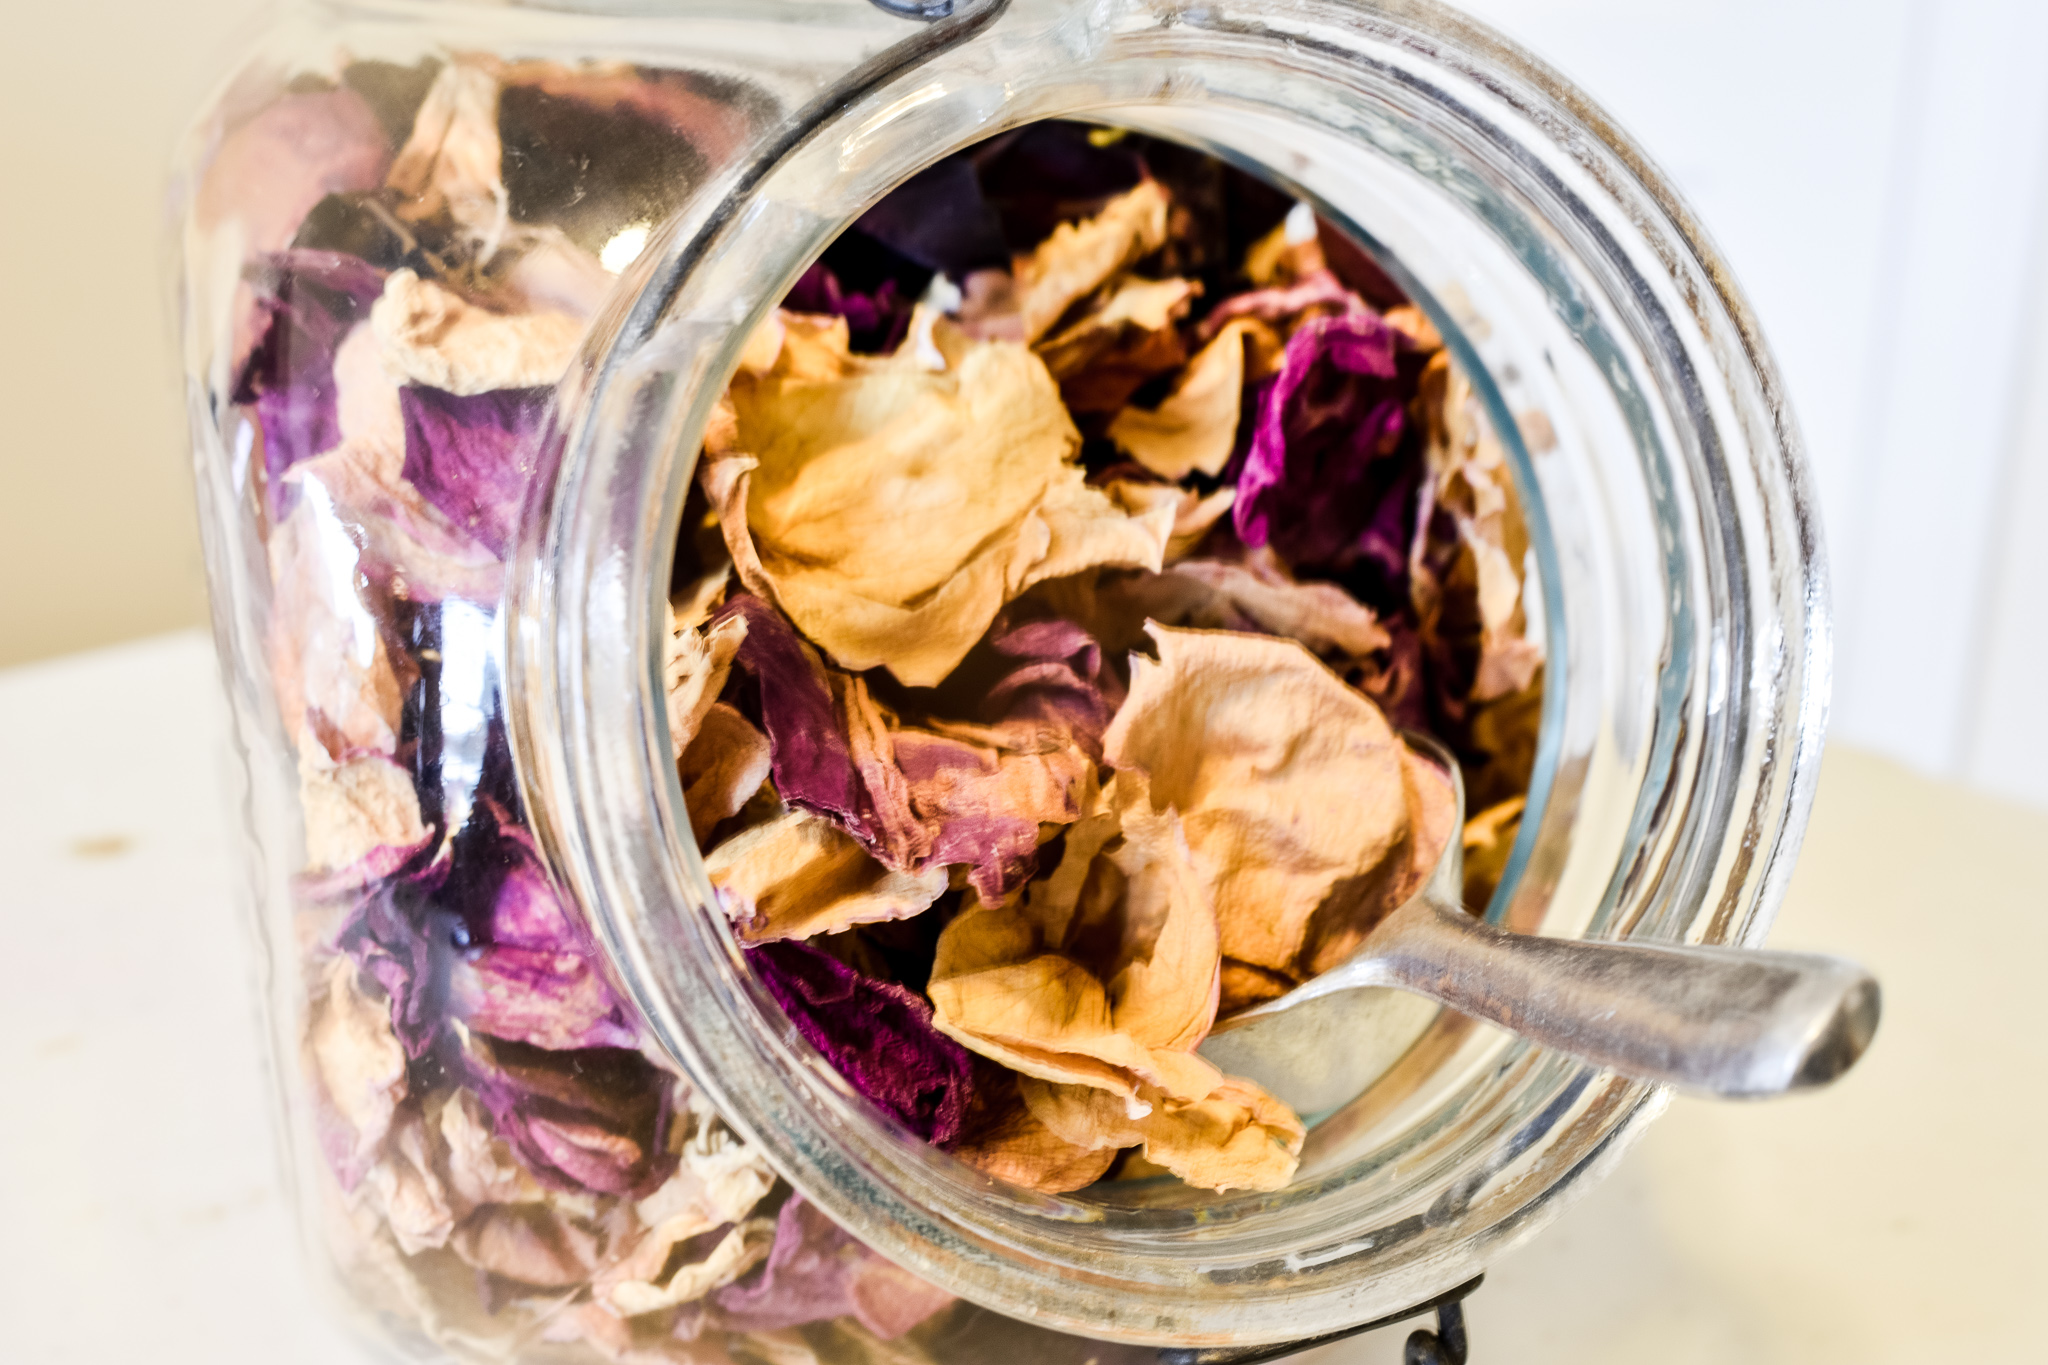 Scooping out rose petals in a vintage glass jar